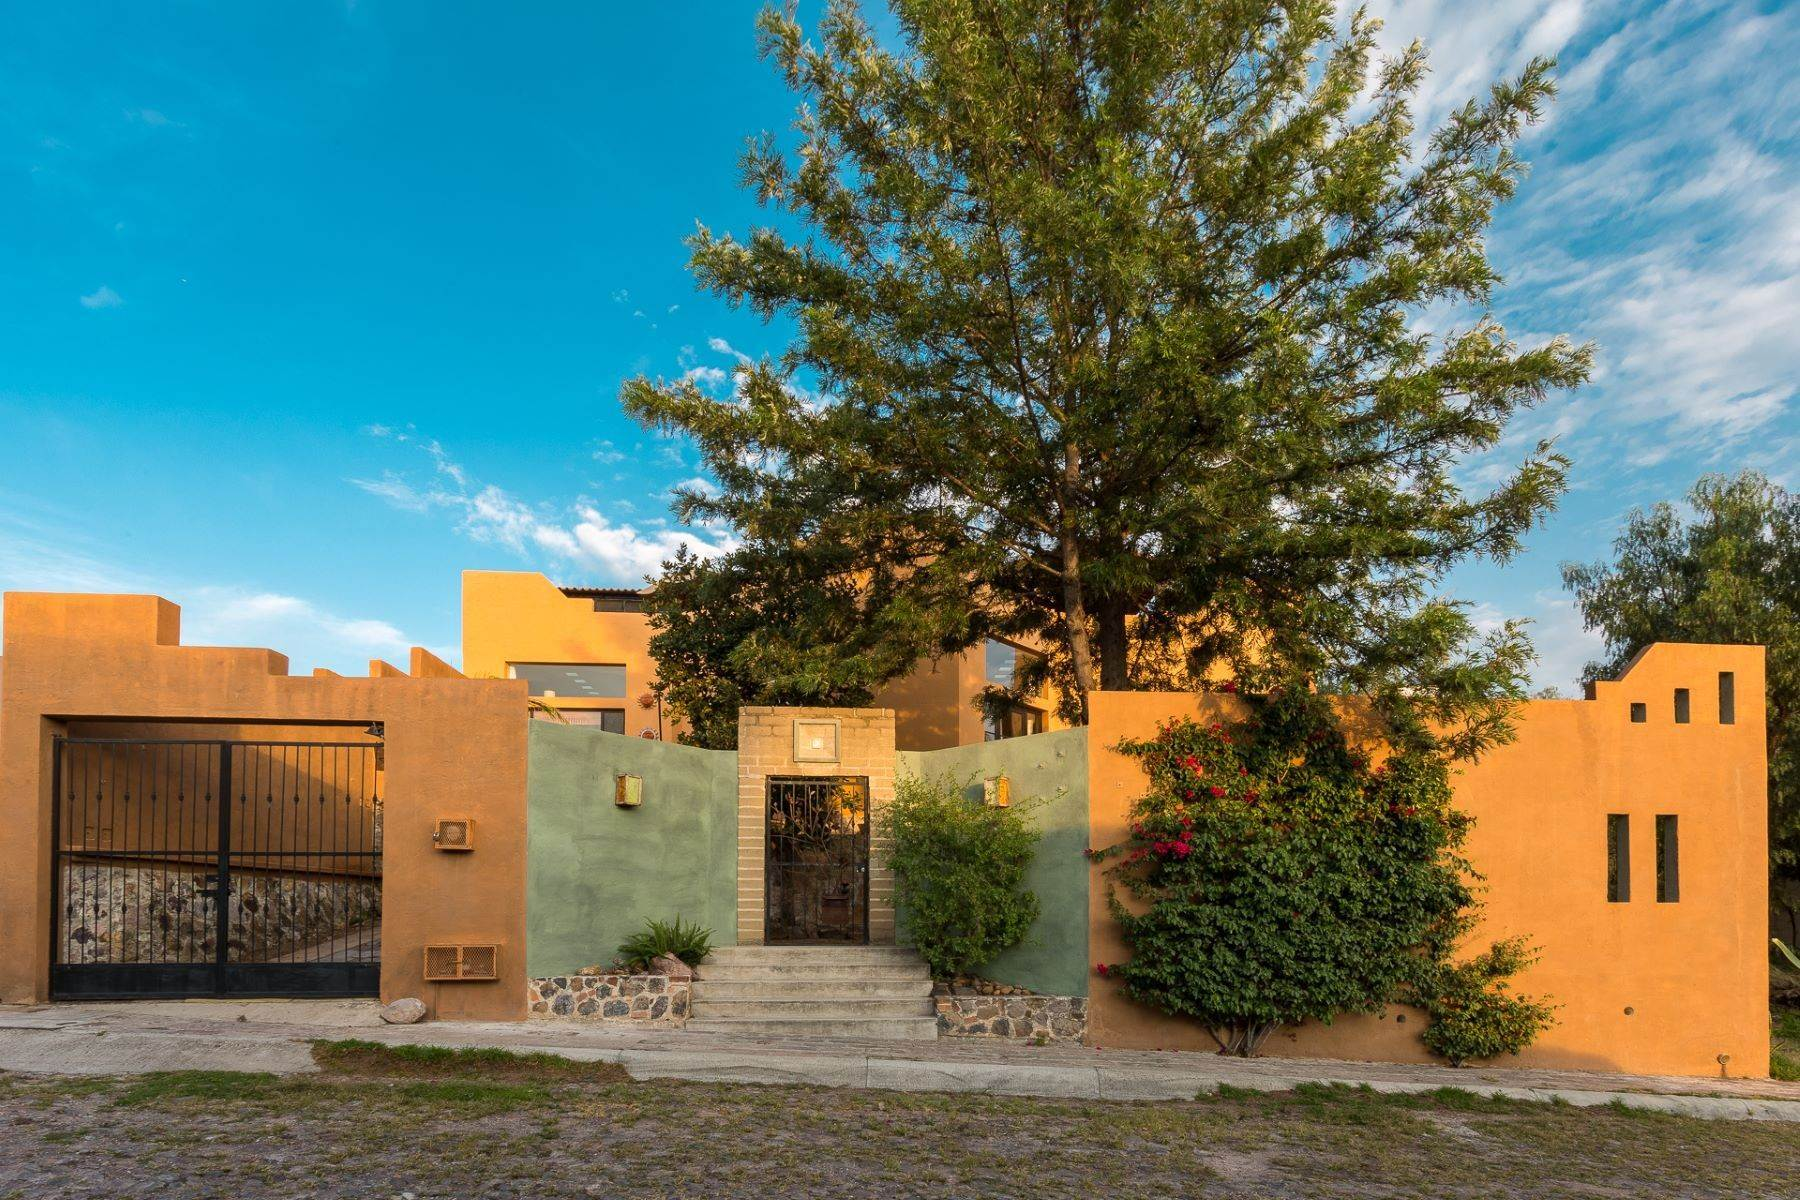 Single Family Homes for Sale at Casa Tecolote Fray Anemizur 6 San Miguel De Allende, Guanajuato 37720 Mexico